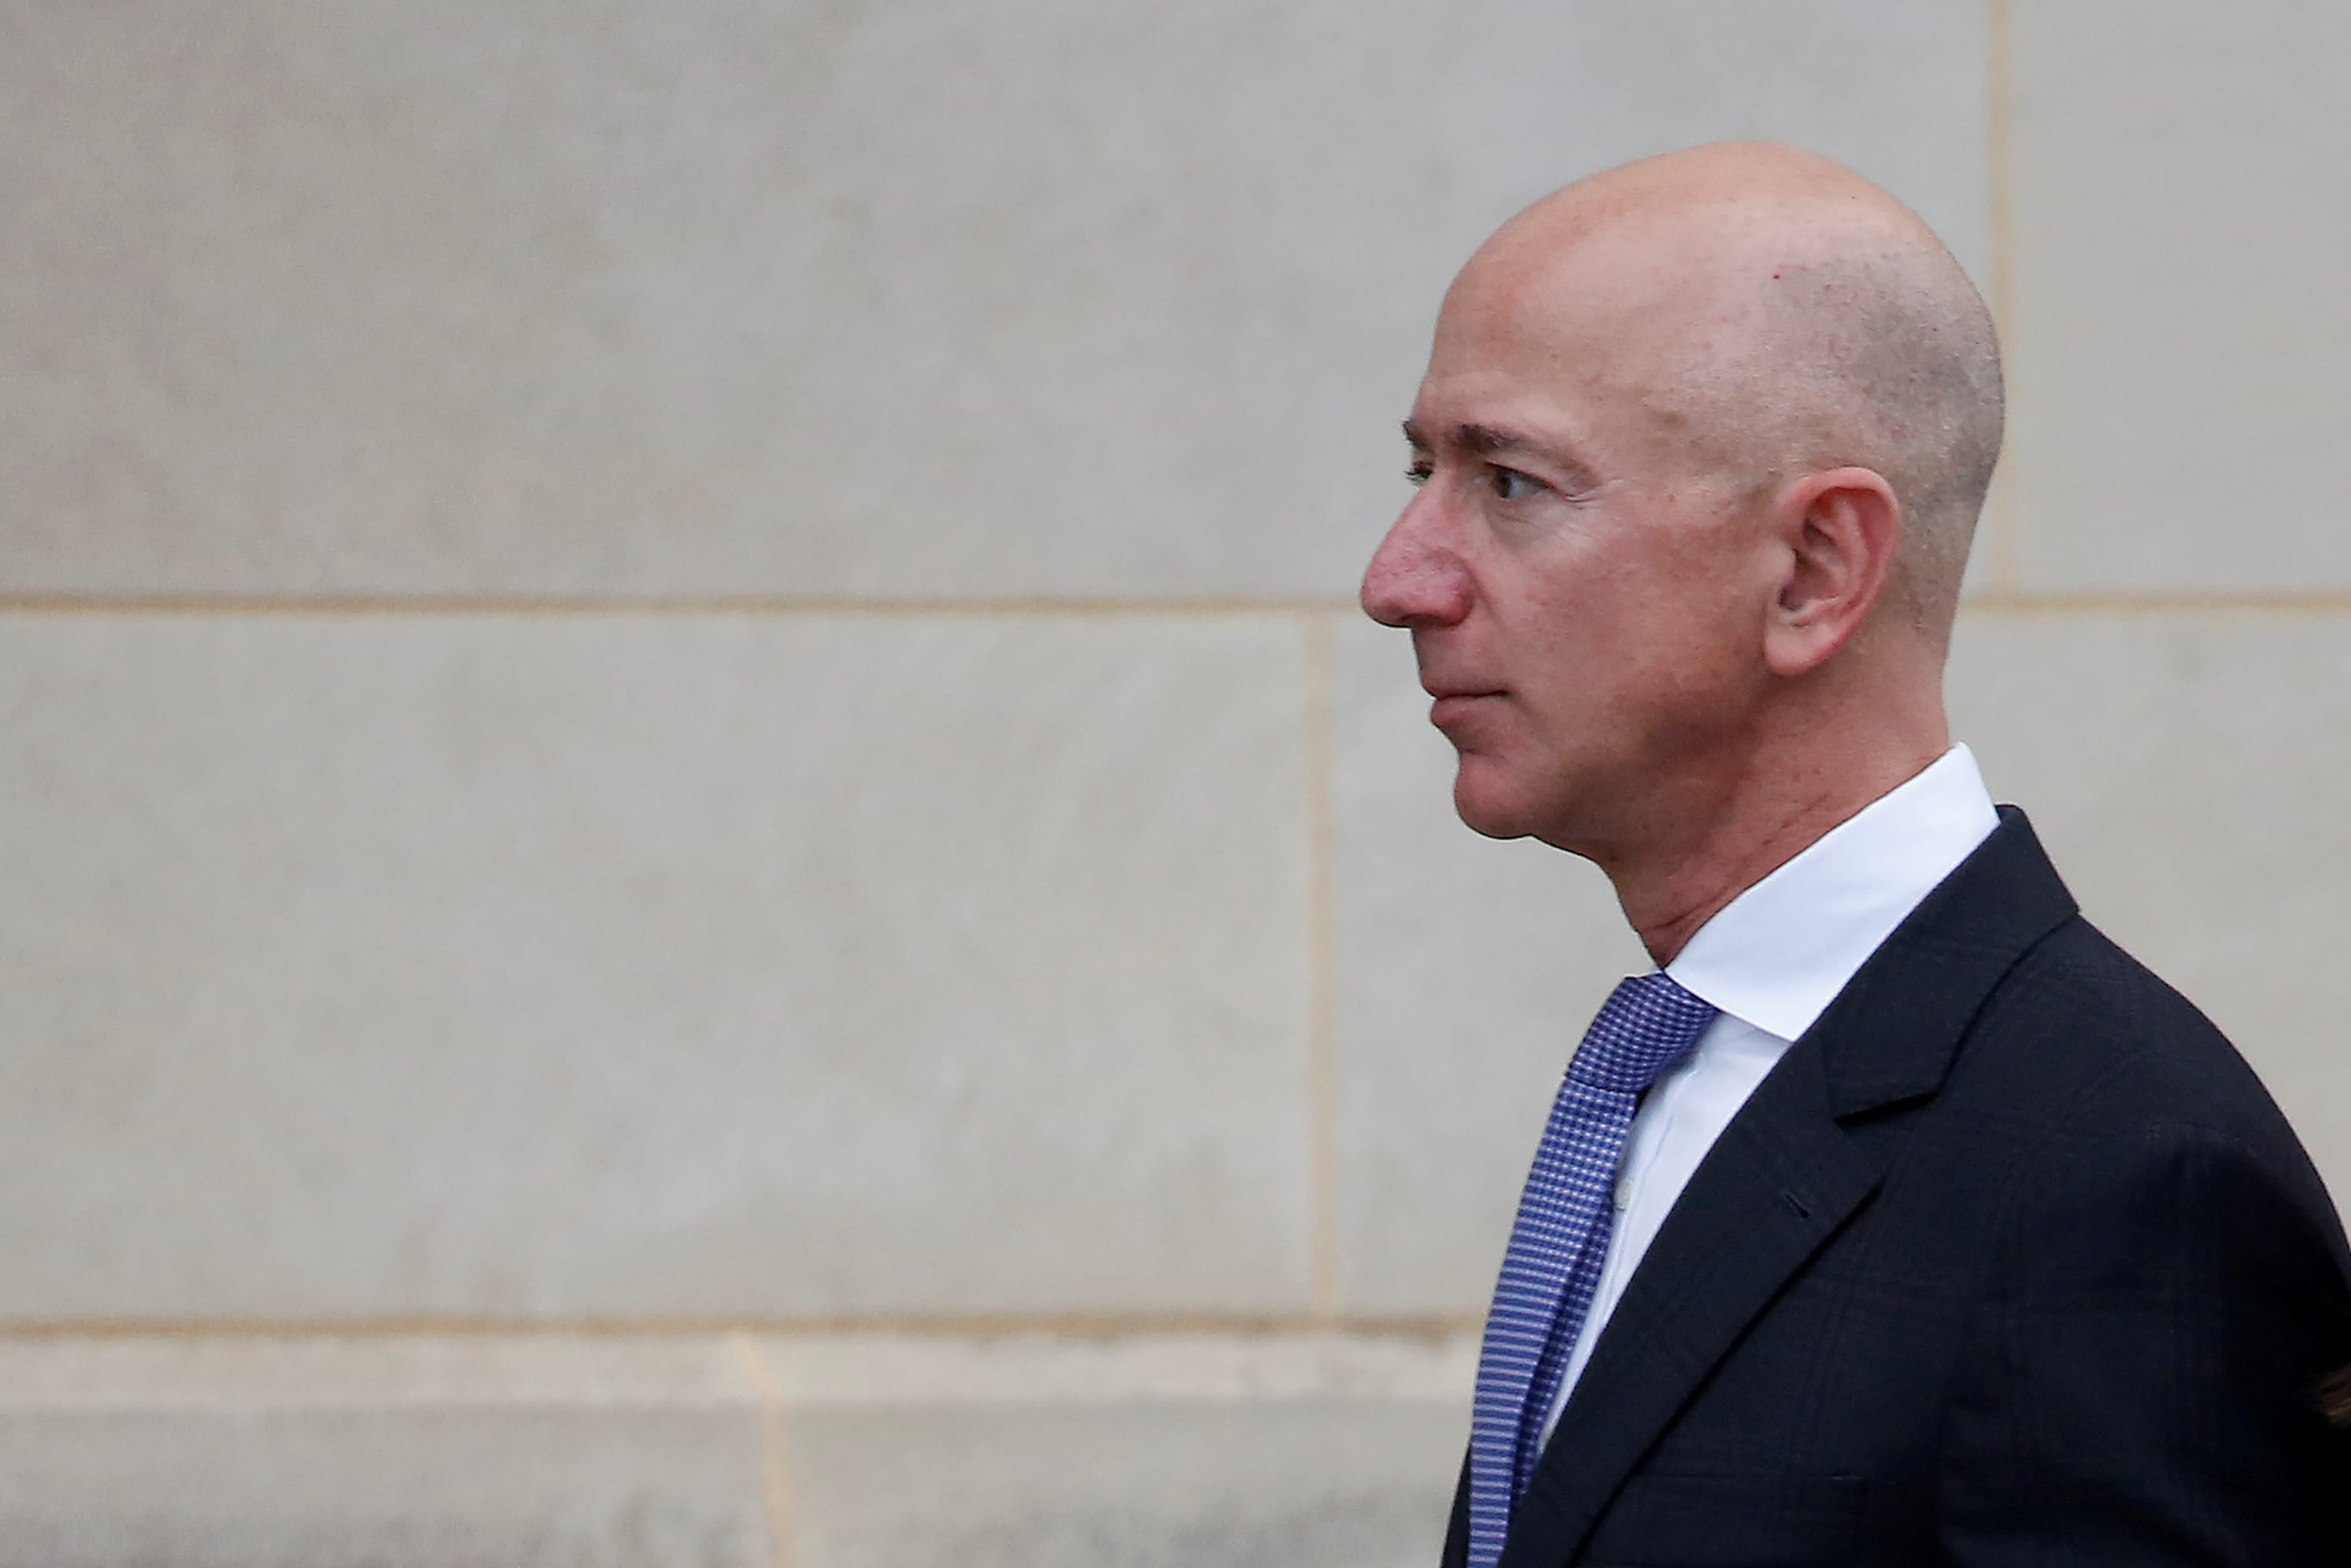 Amazon paid a Trump fundraiser to lobby against vendors who sell counterfeit goods